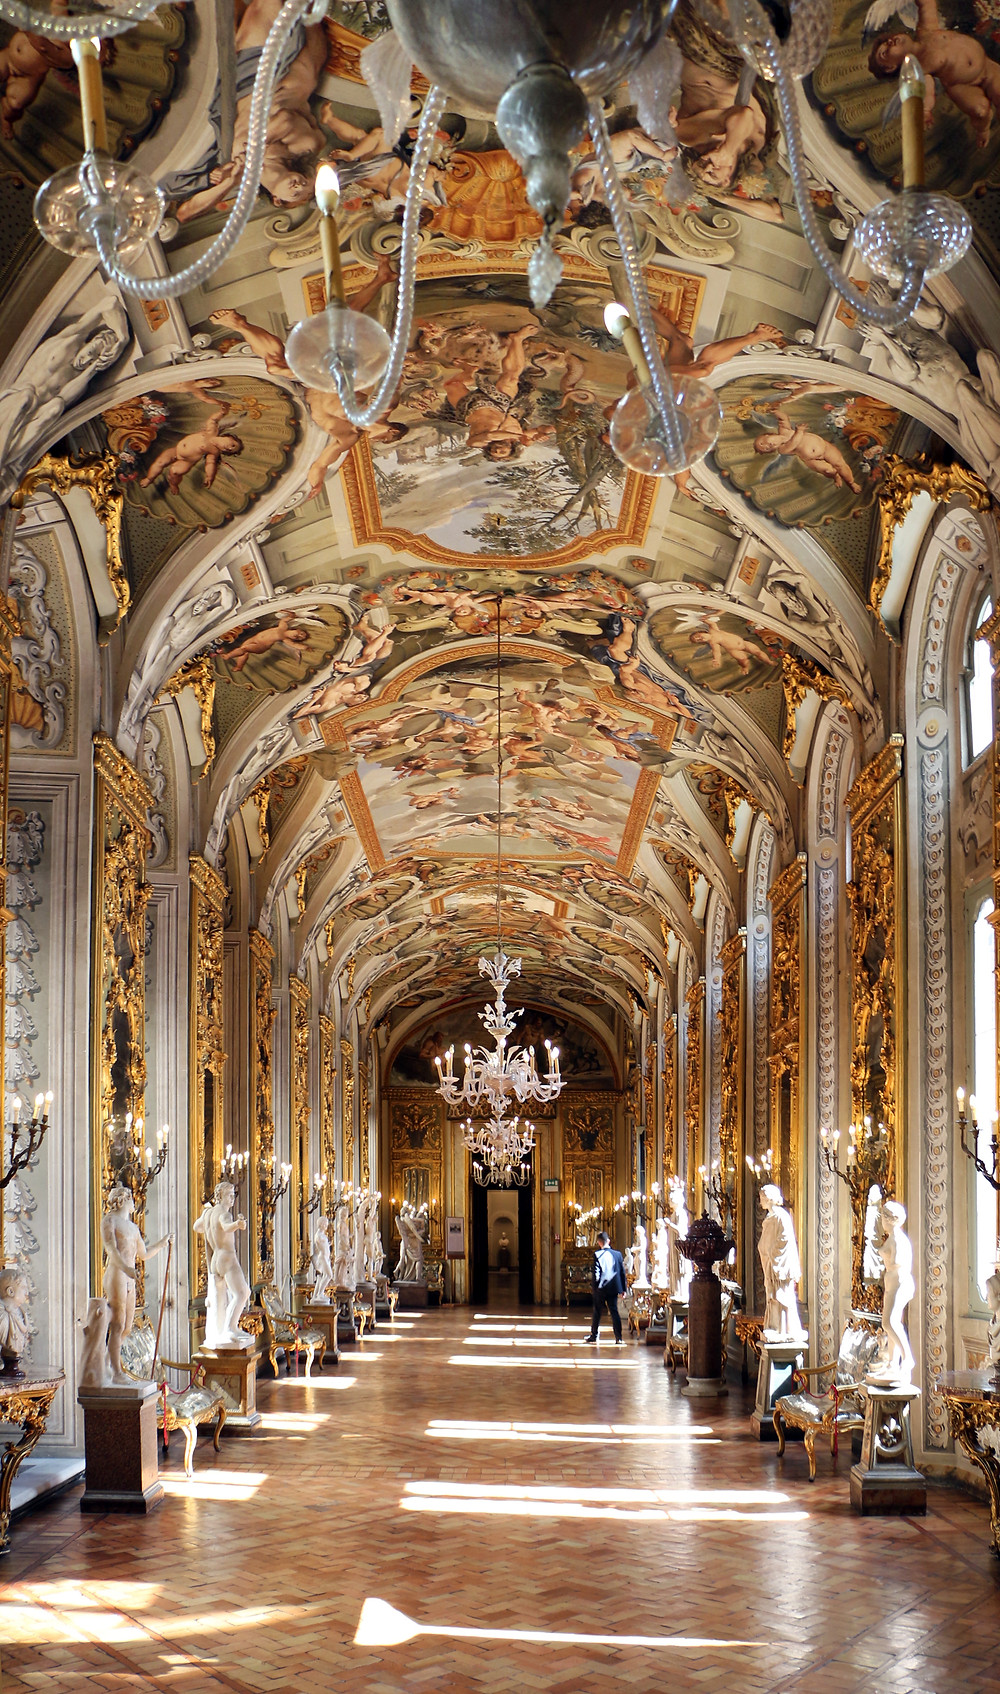 the beautiful Gallery of Mirrors in the Doria Pamphilj